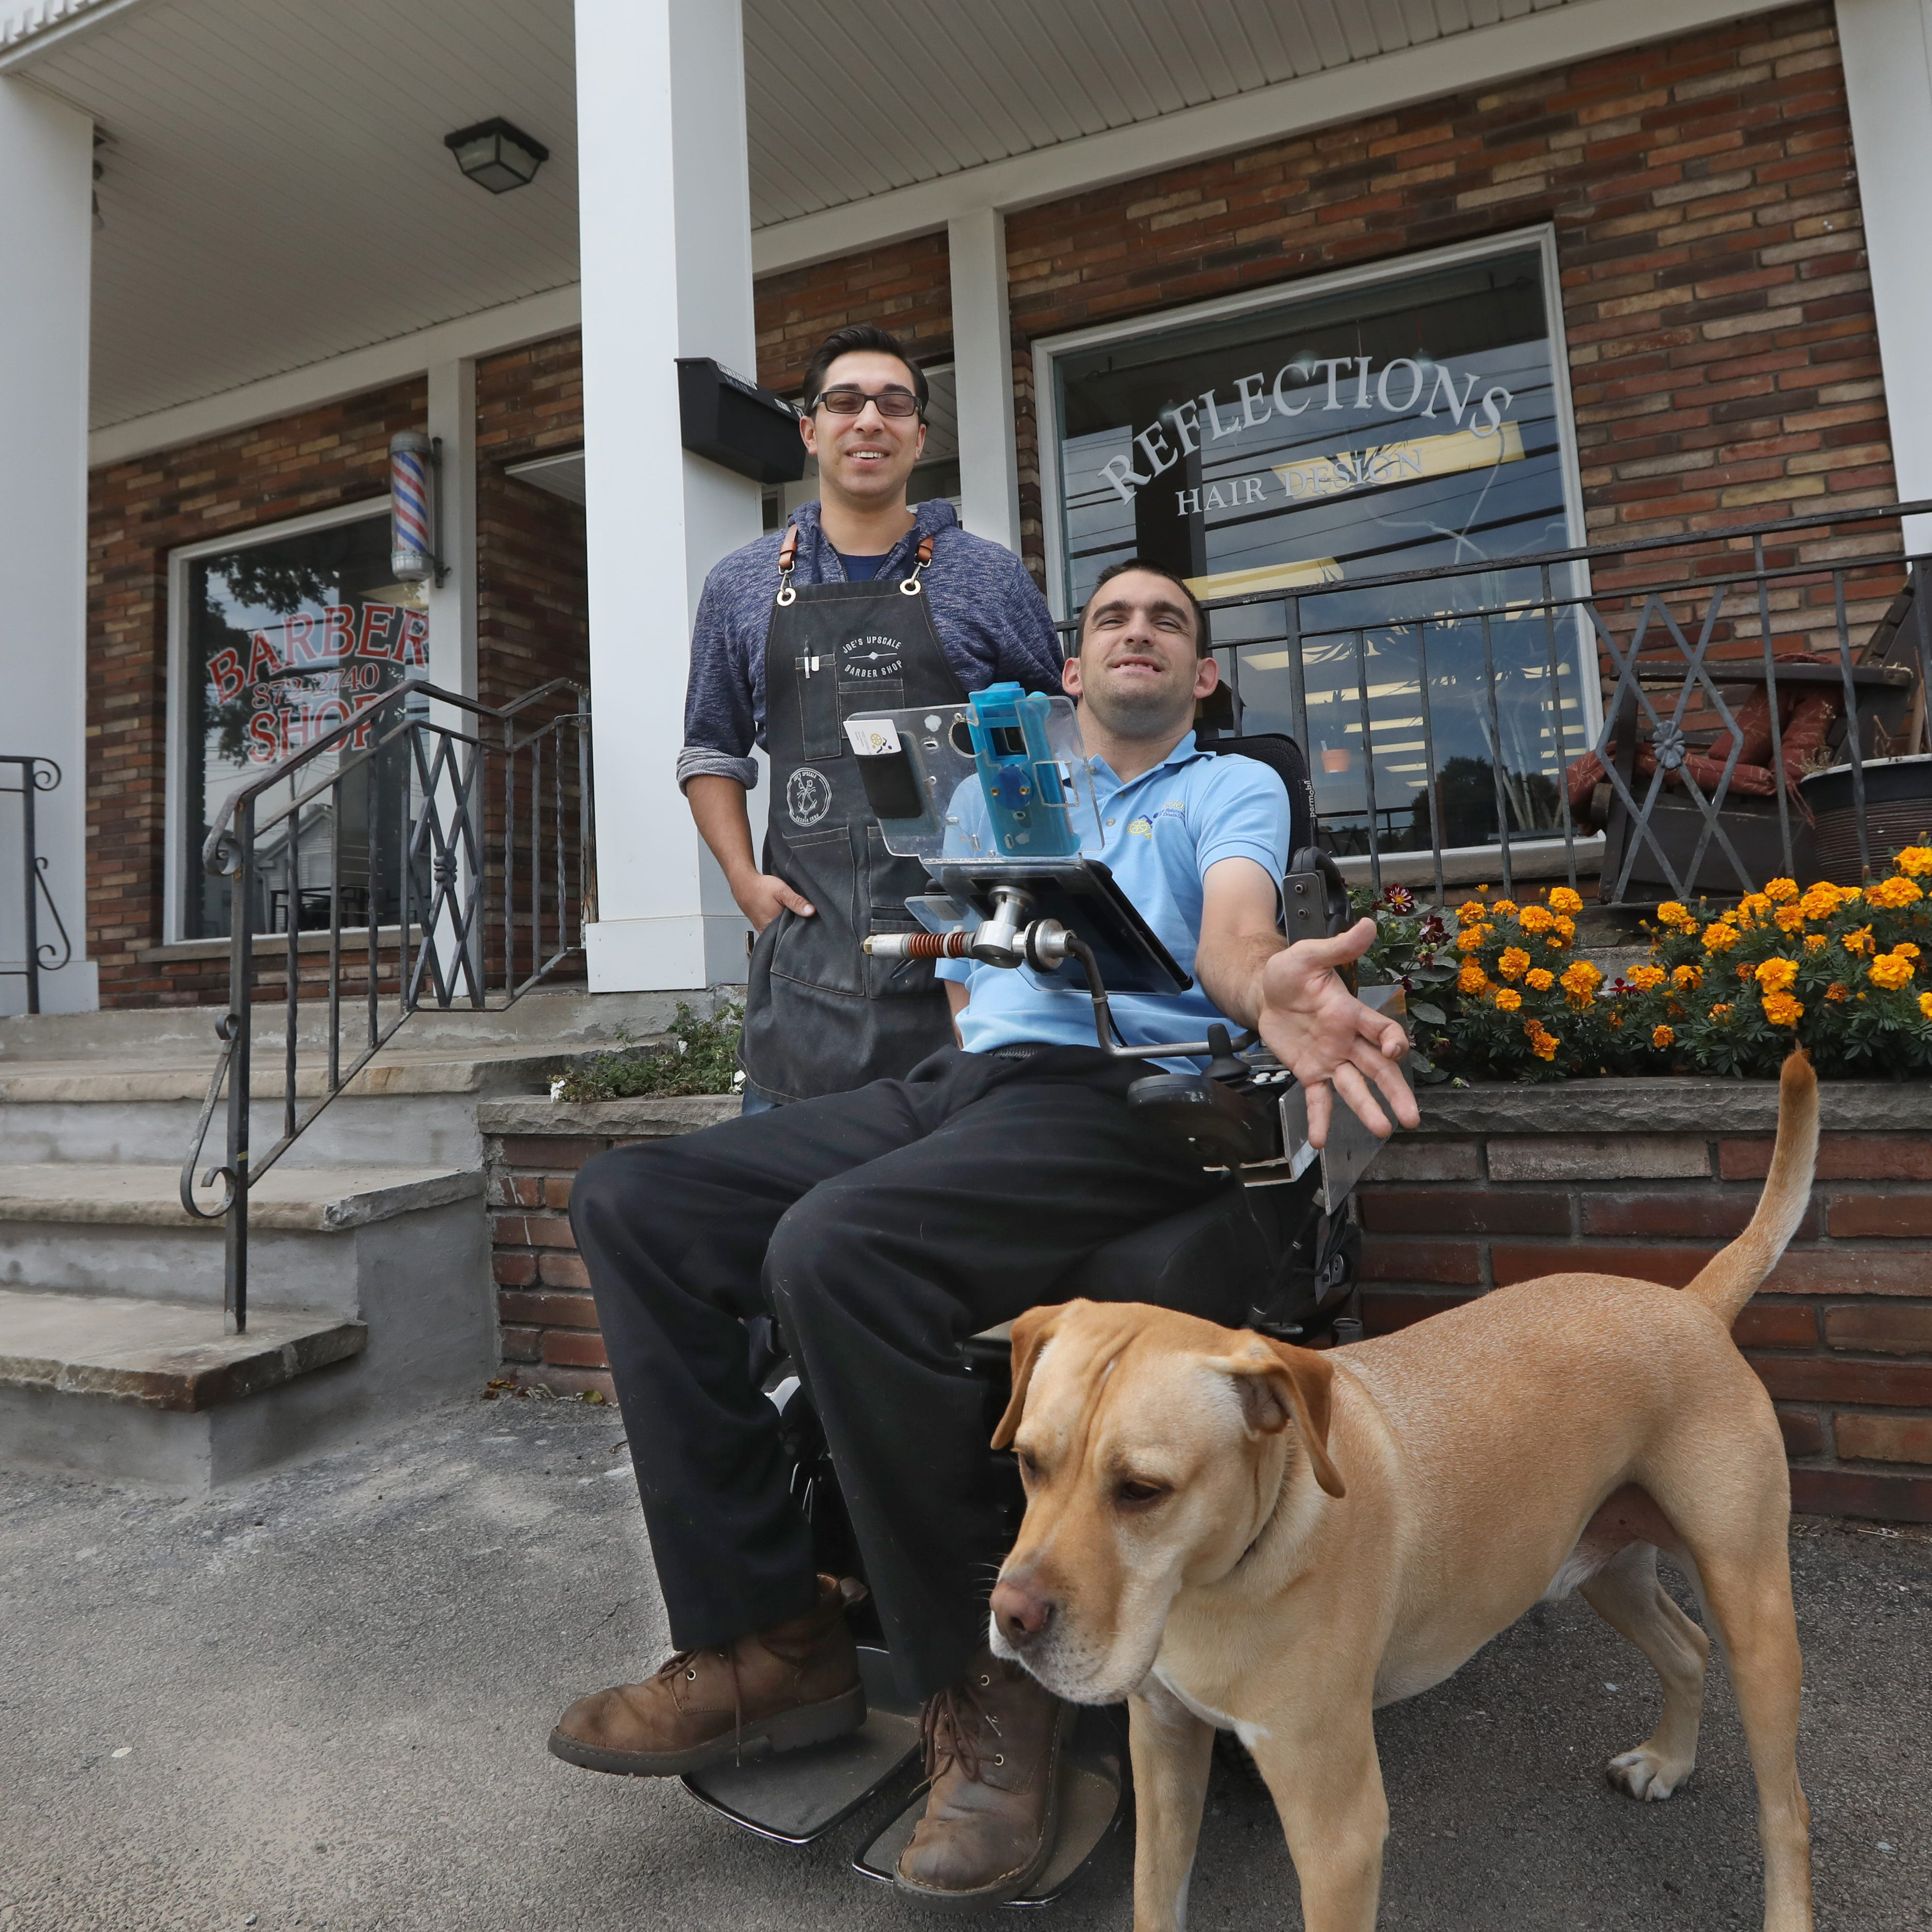 Webster barber receives attention for cutting hair of customer in wheelchair on sidewalk